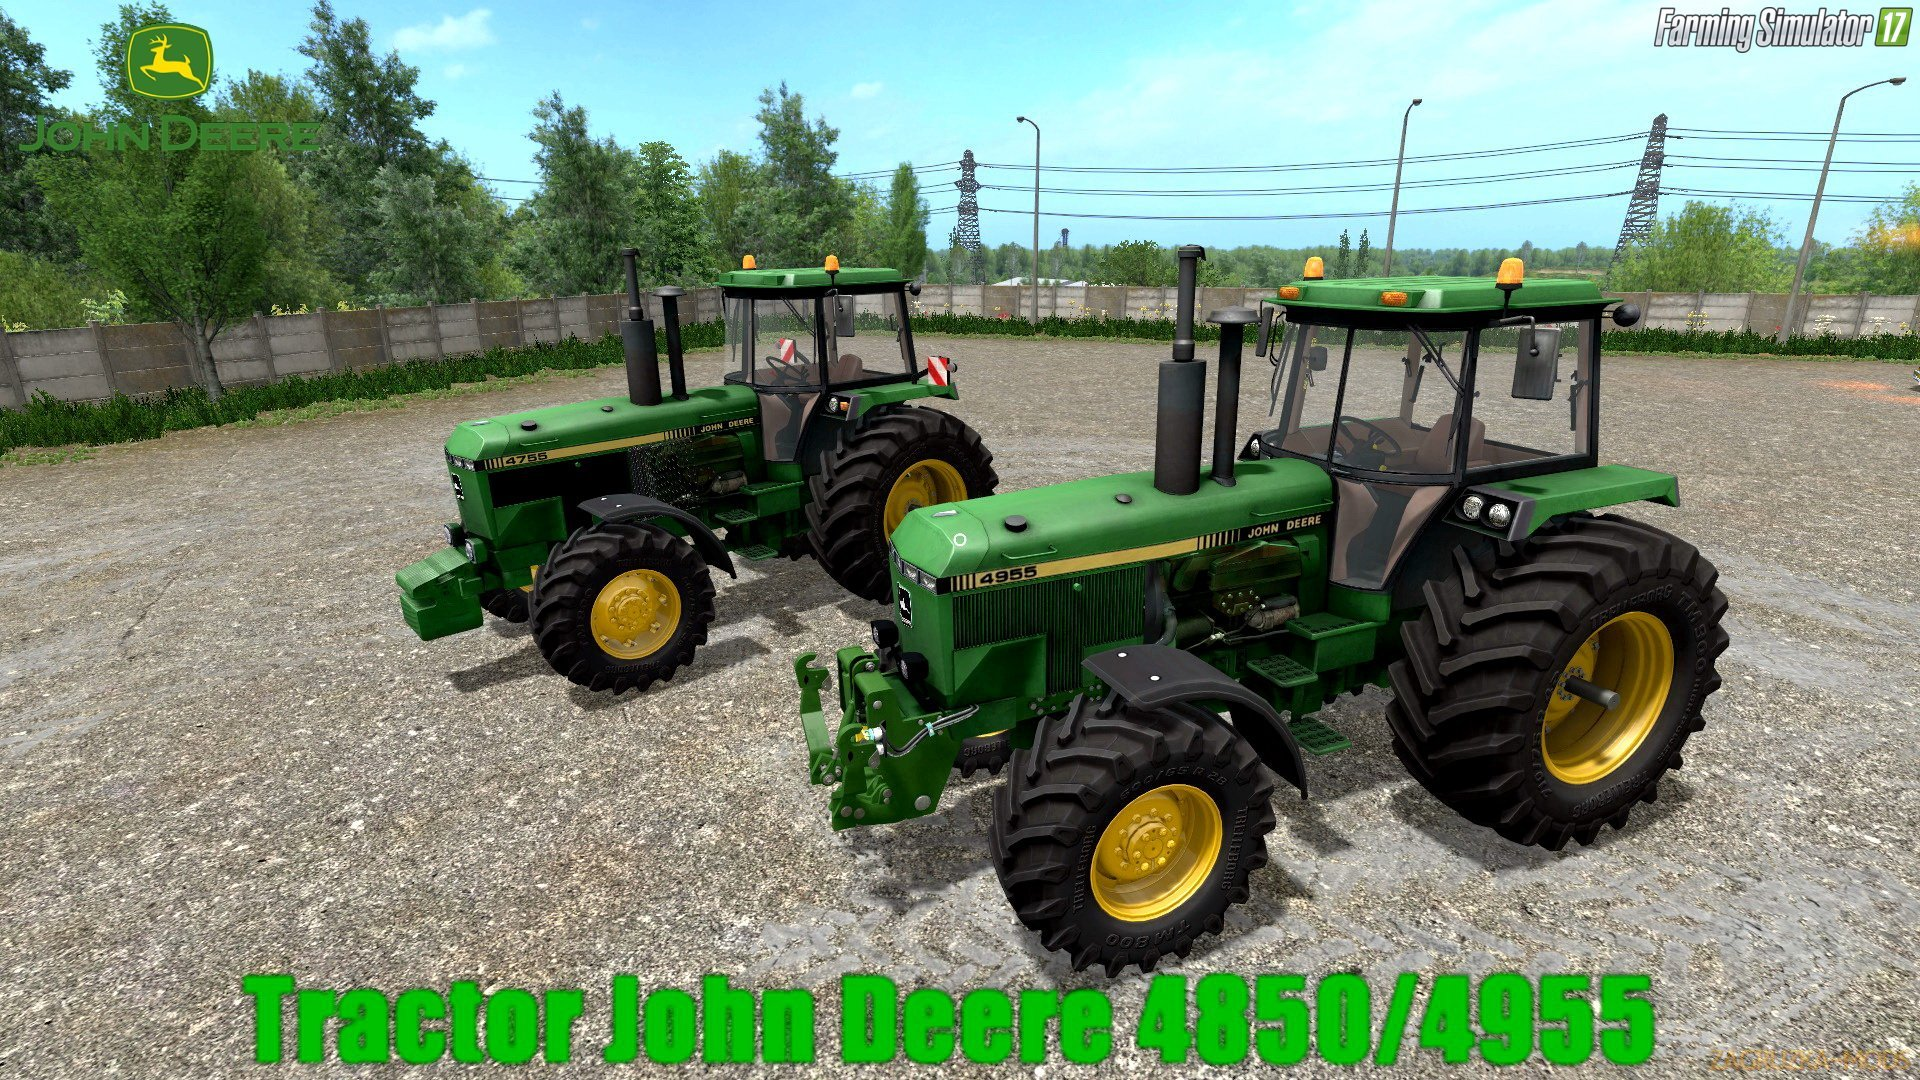 John Deere 4850/4955 v4.0.0.1 for FS 17